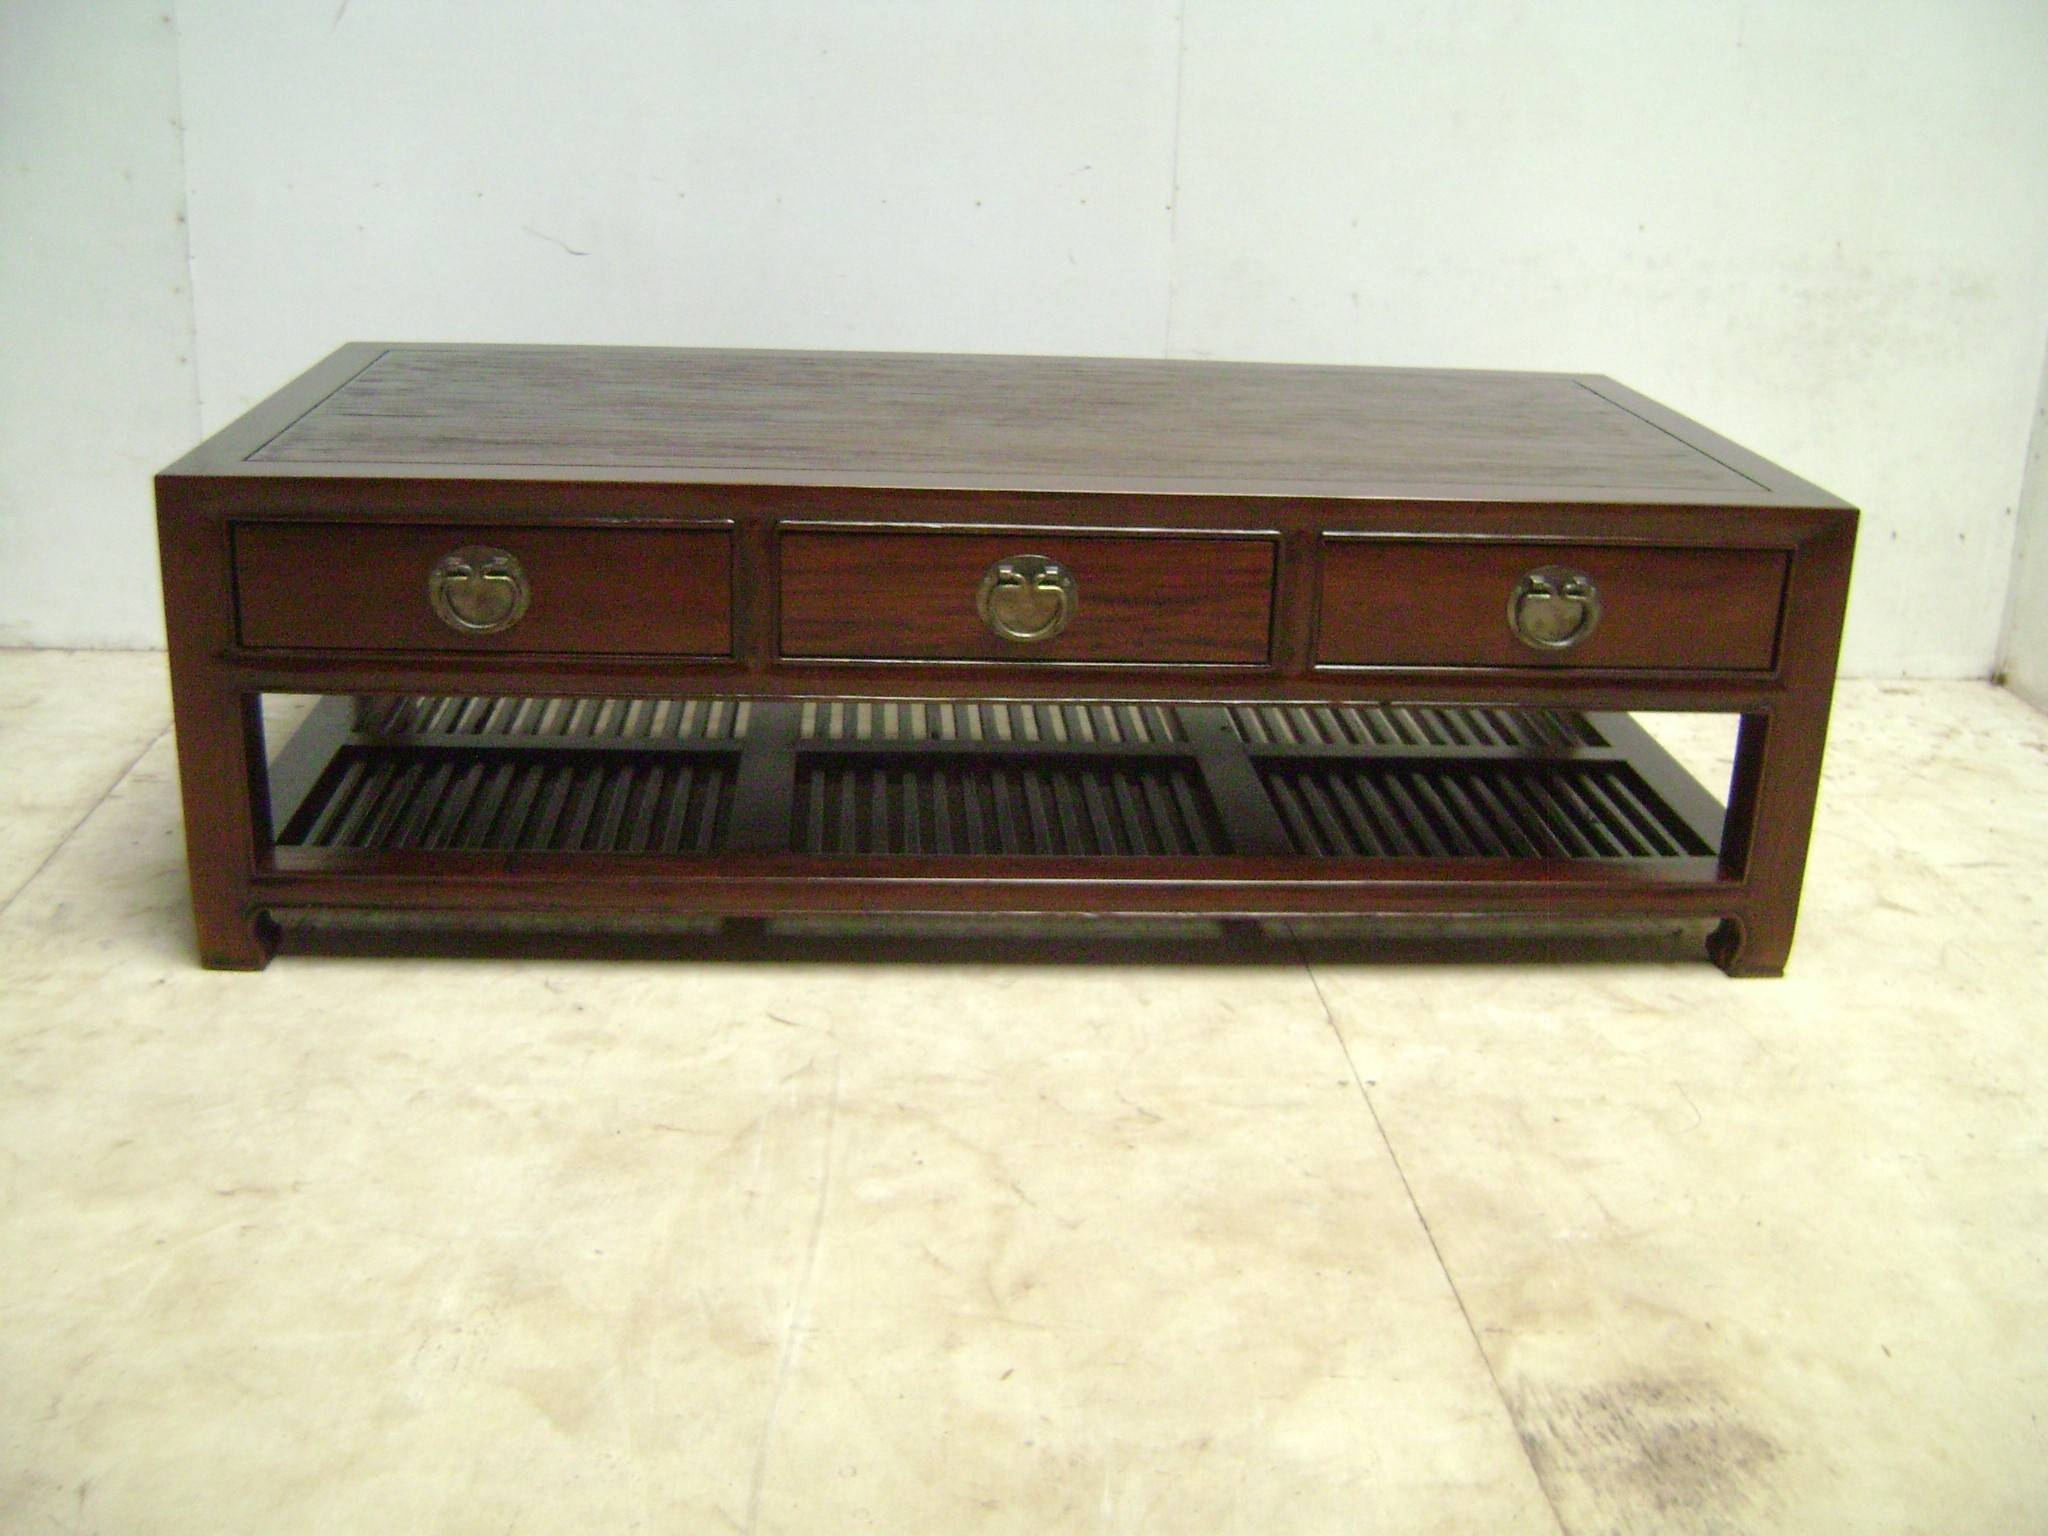 Outstanding Chinese Coffee Table Asian Style Furniture – Black for Low Coffee Tables (Image 27 of 30)